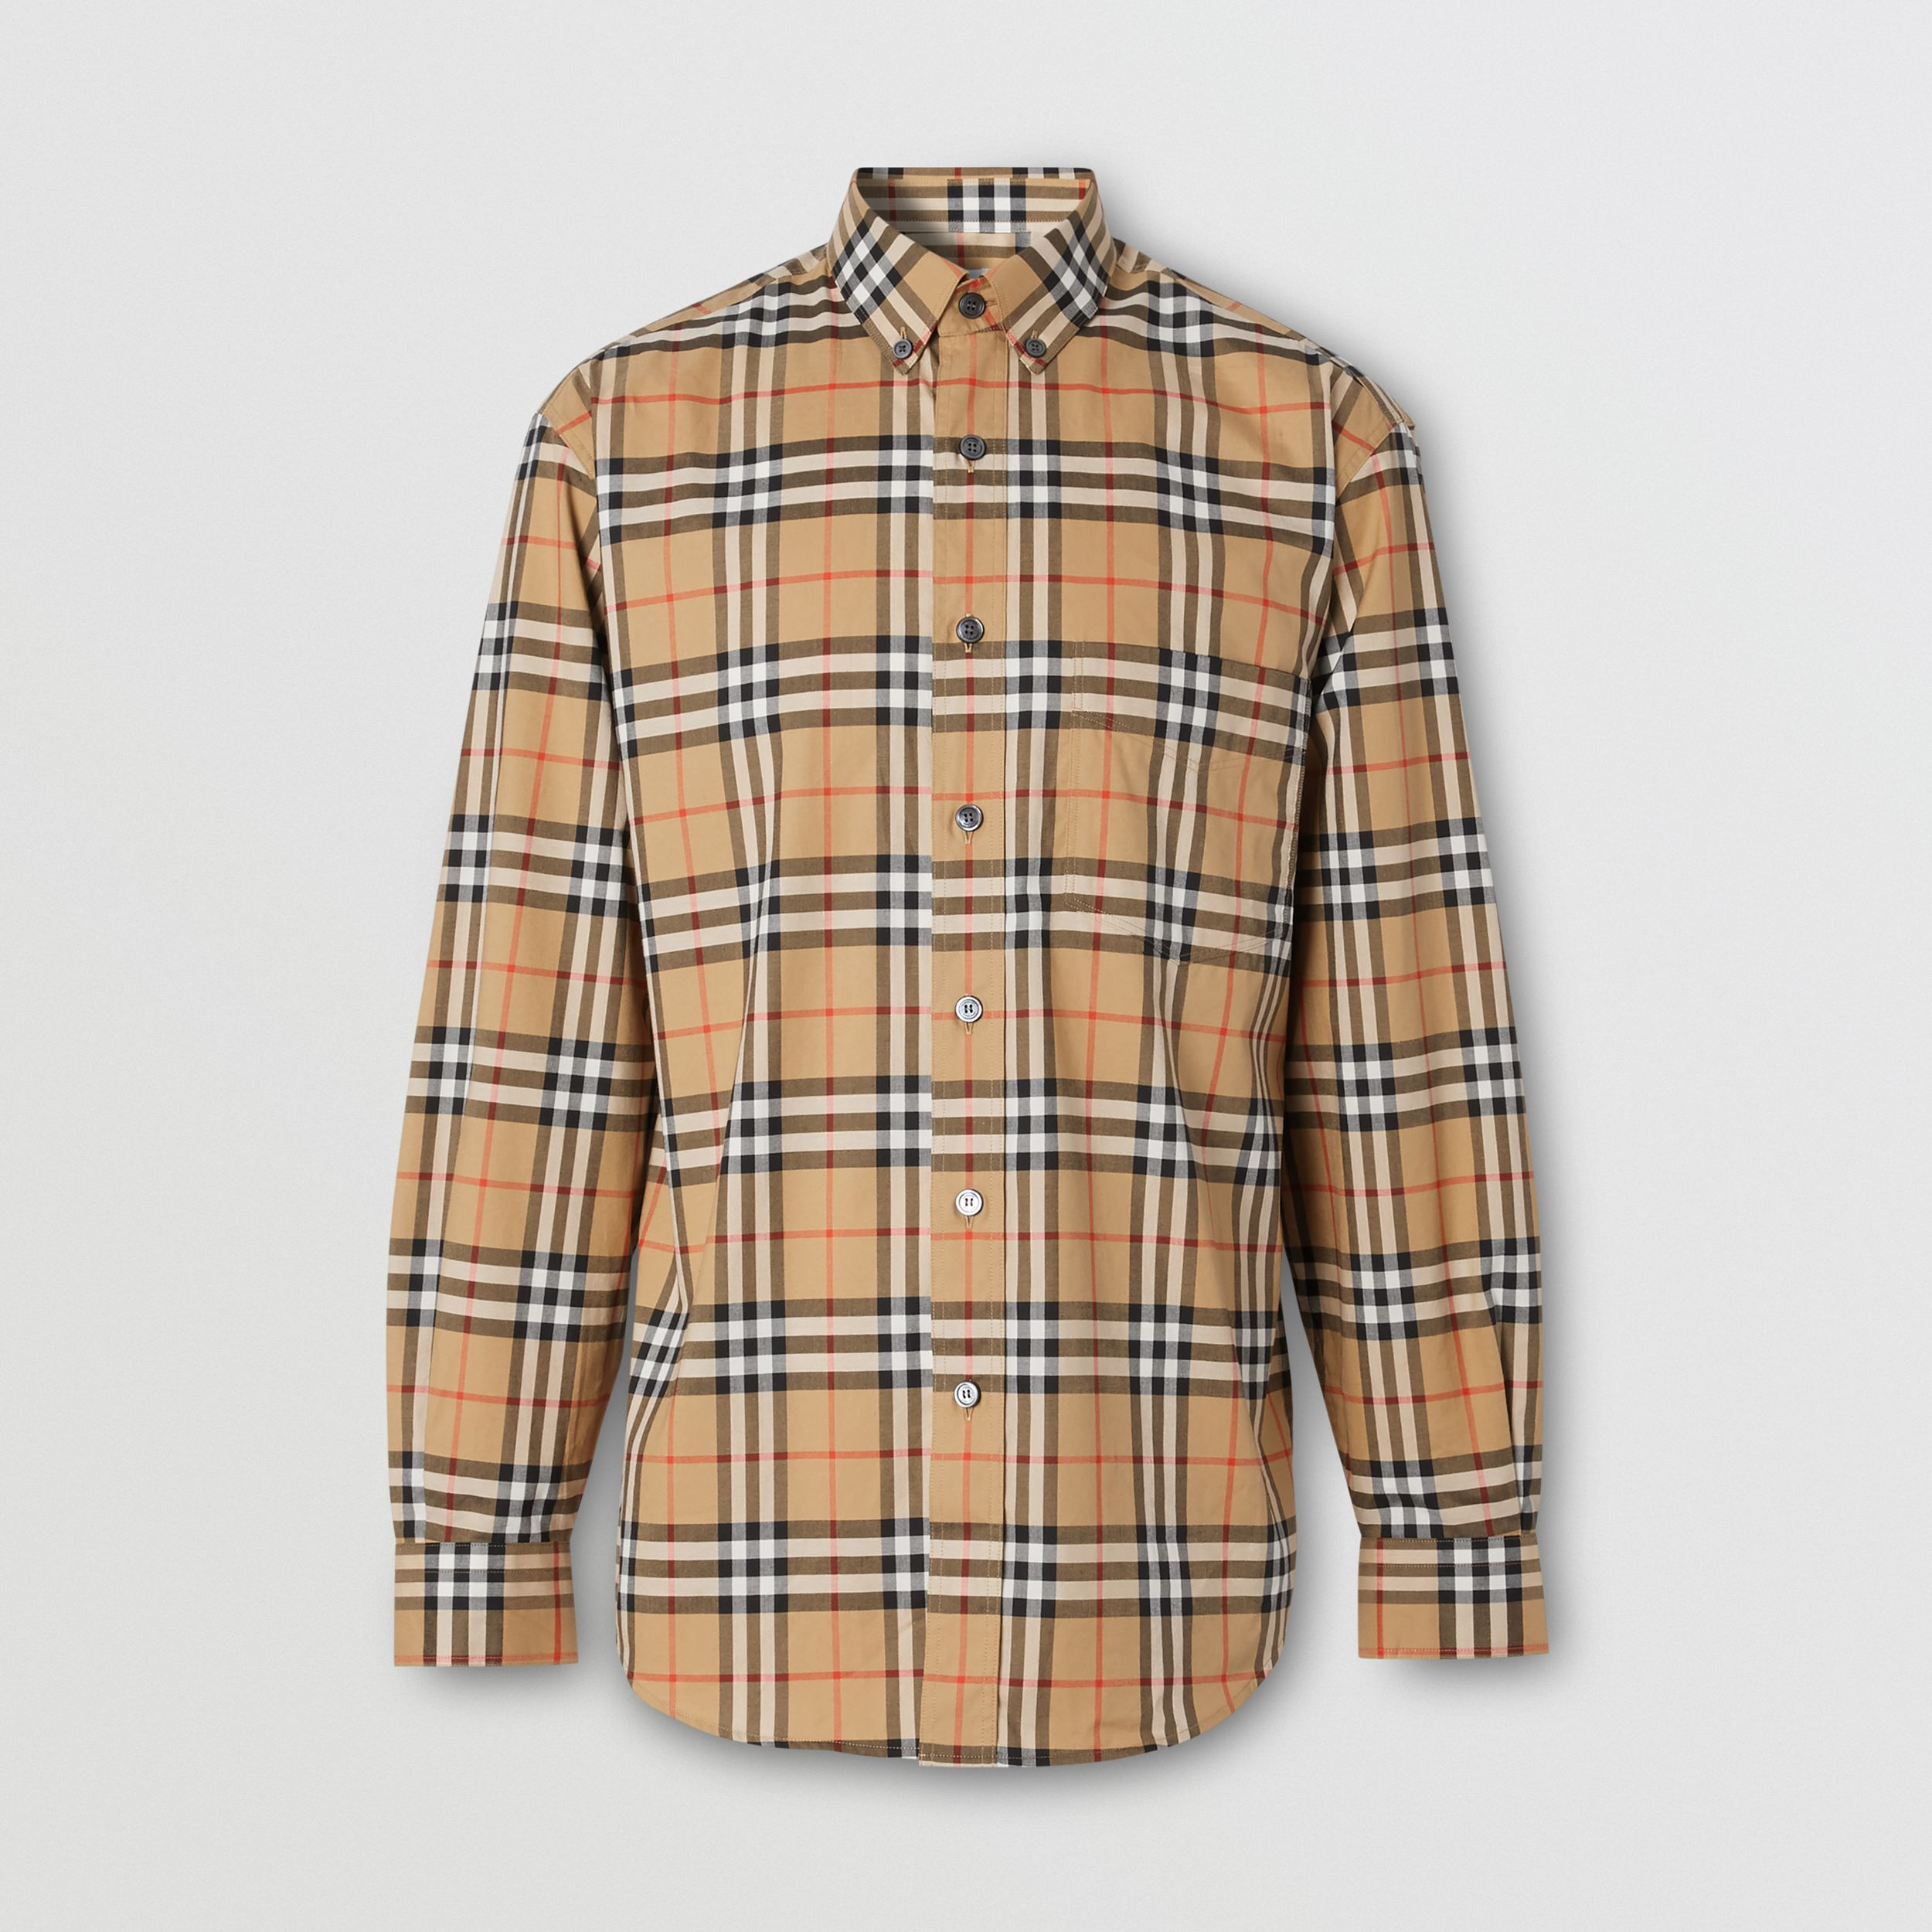 Button-down Collar Vintage Check Cotton Shirt in Antique Yellow - Men | Burberry - 4